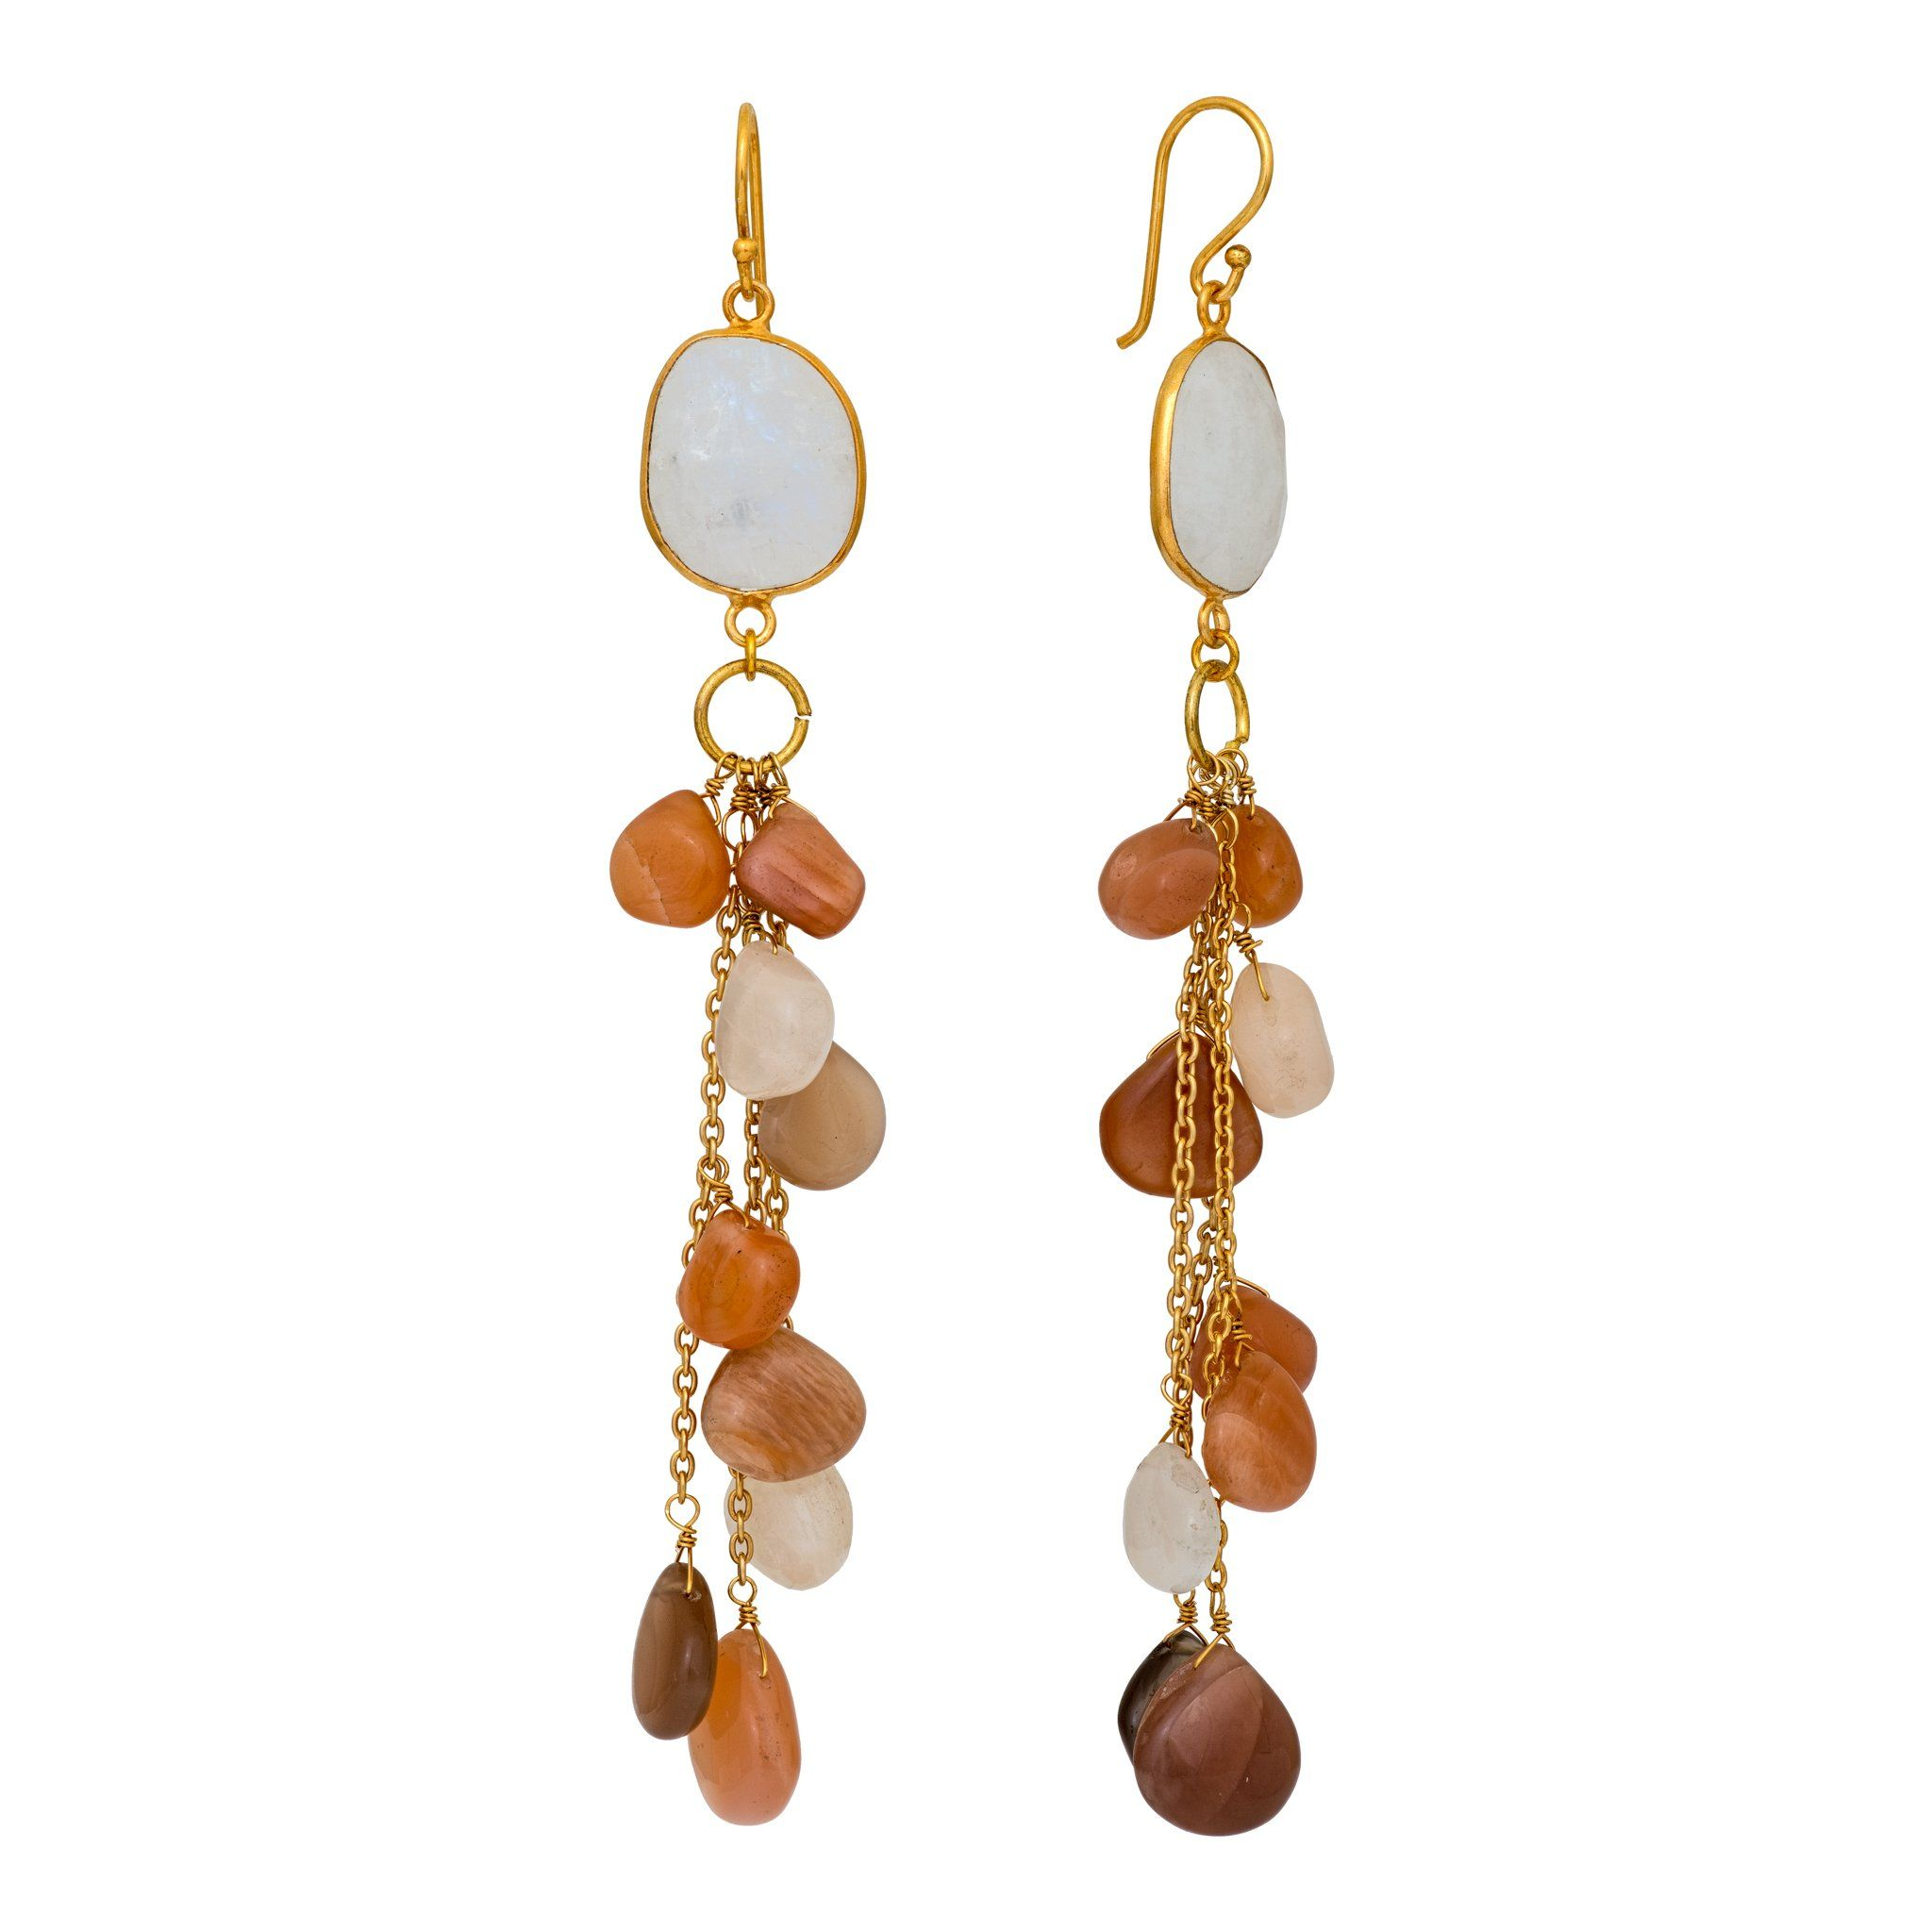 LUZ mix of peach moonstone cluster long earrings - MadamSiam